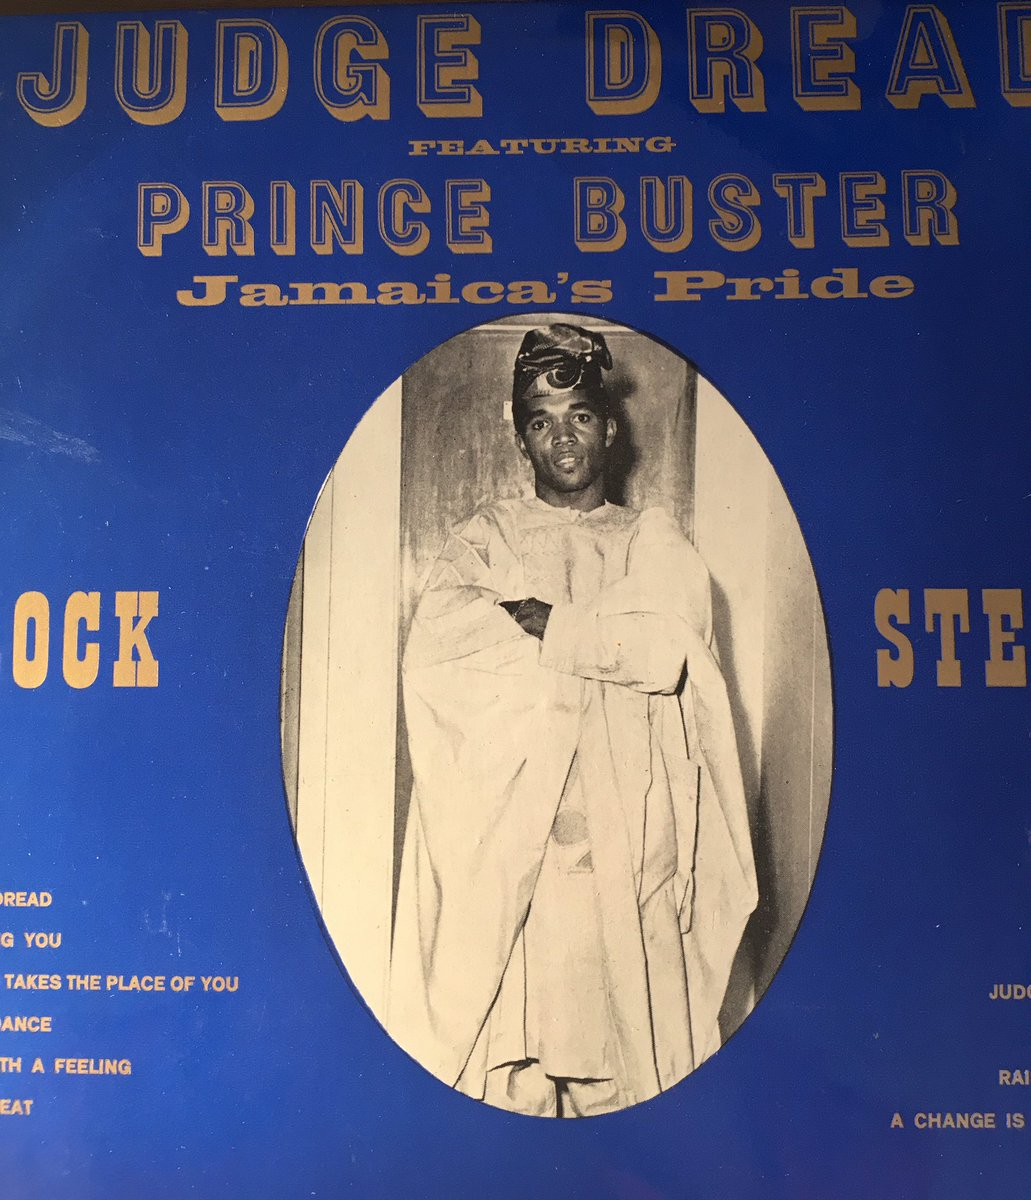 RIP Prince Buster ....#Legend https://t.co/86RXFCo1Wm